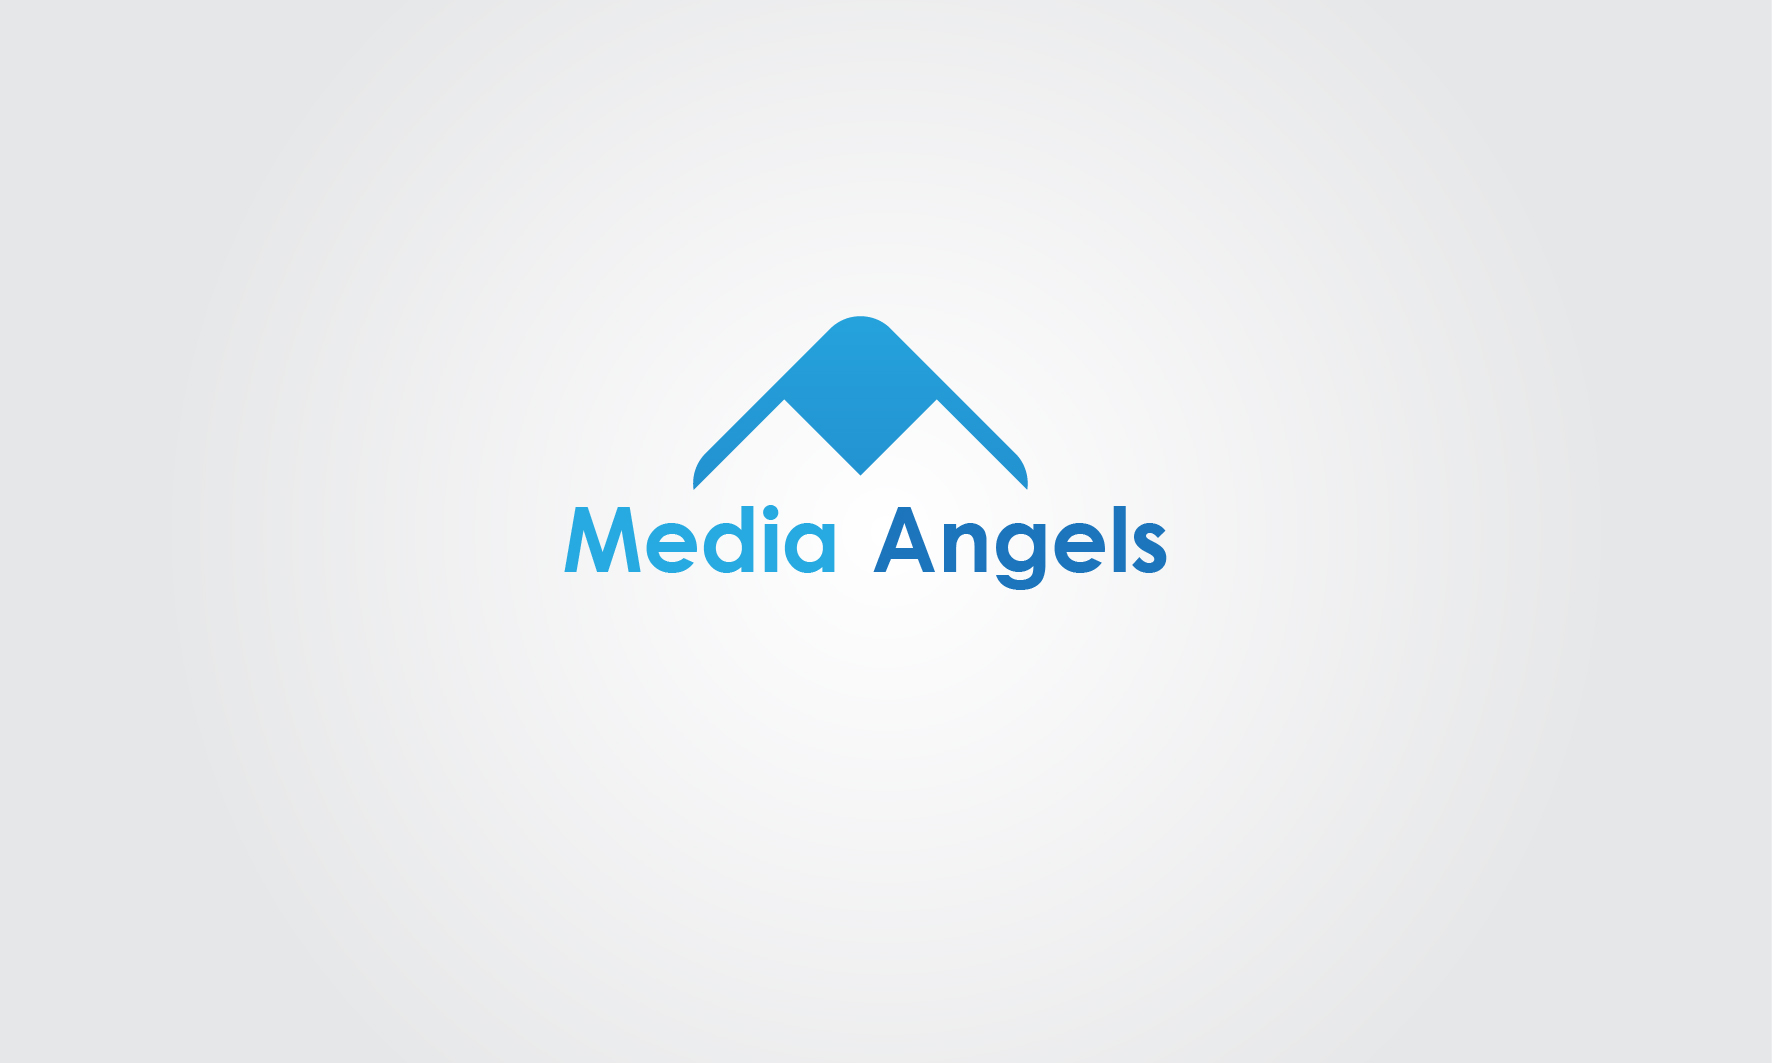 Logo Design by 3draw - Entry No. 208 in the Logo Design Contest New Logo Design for Media Angels.